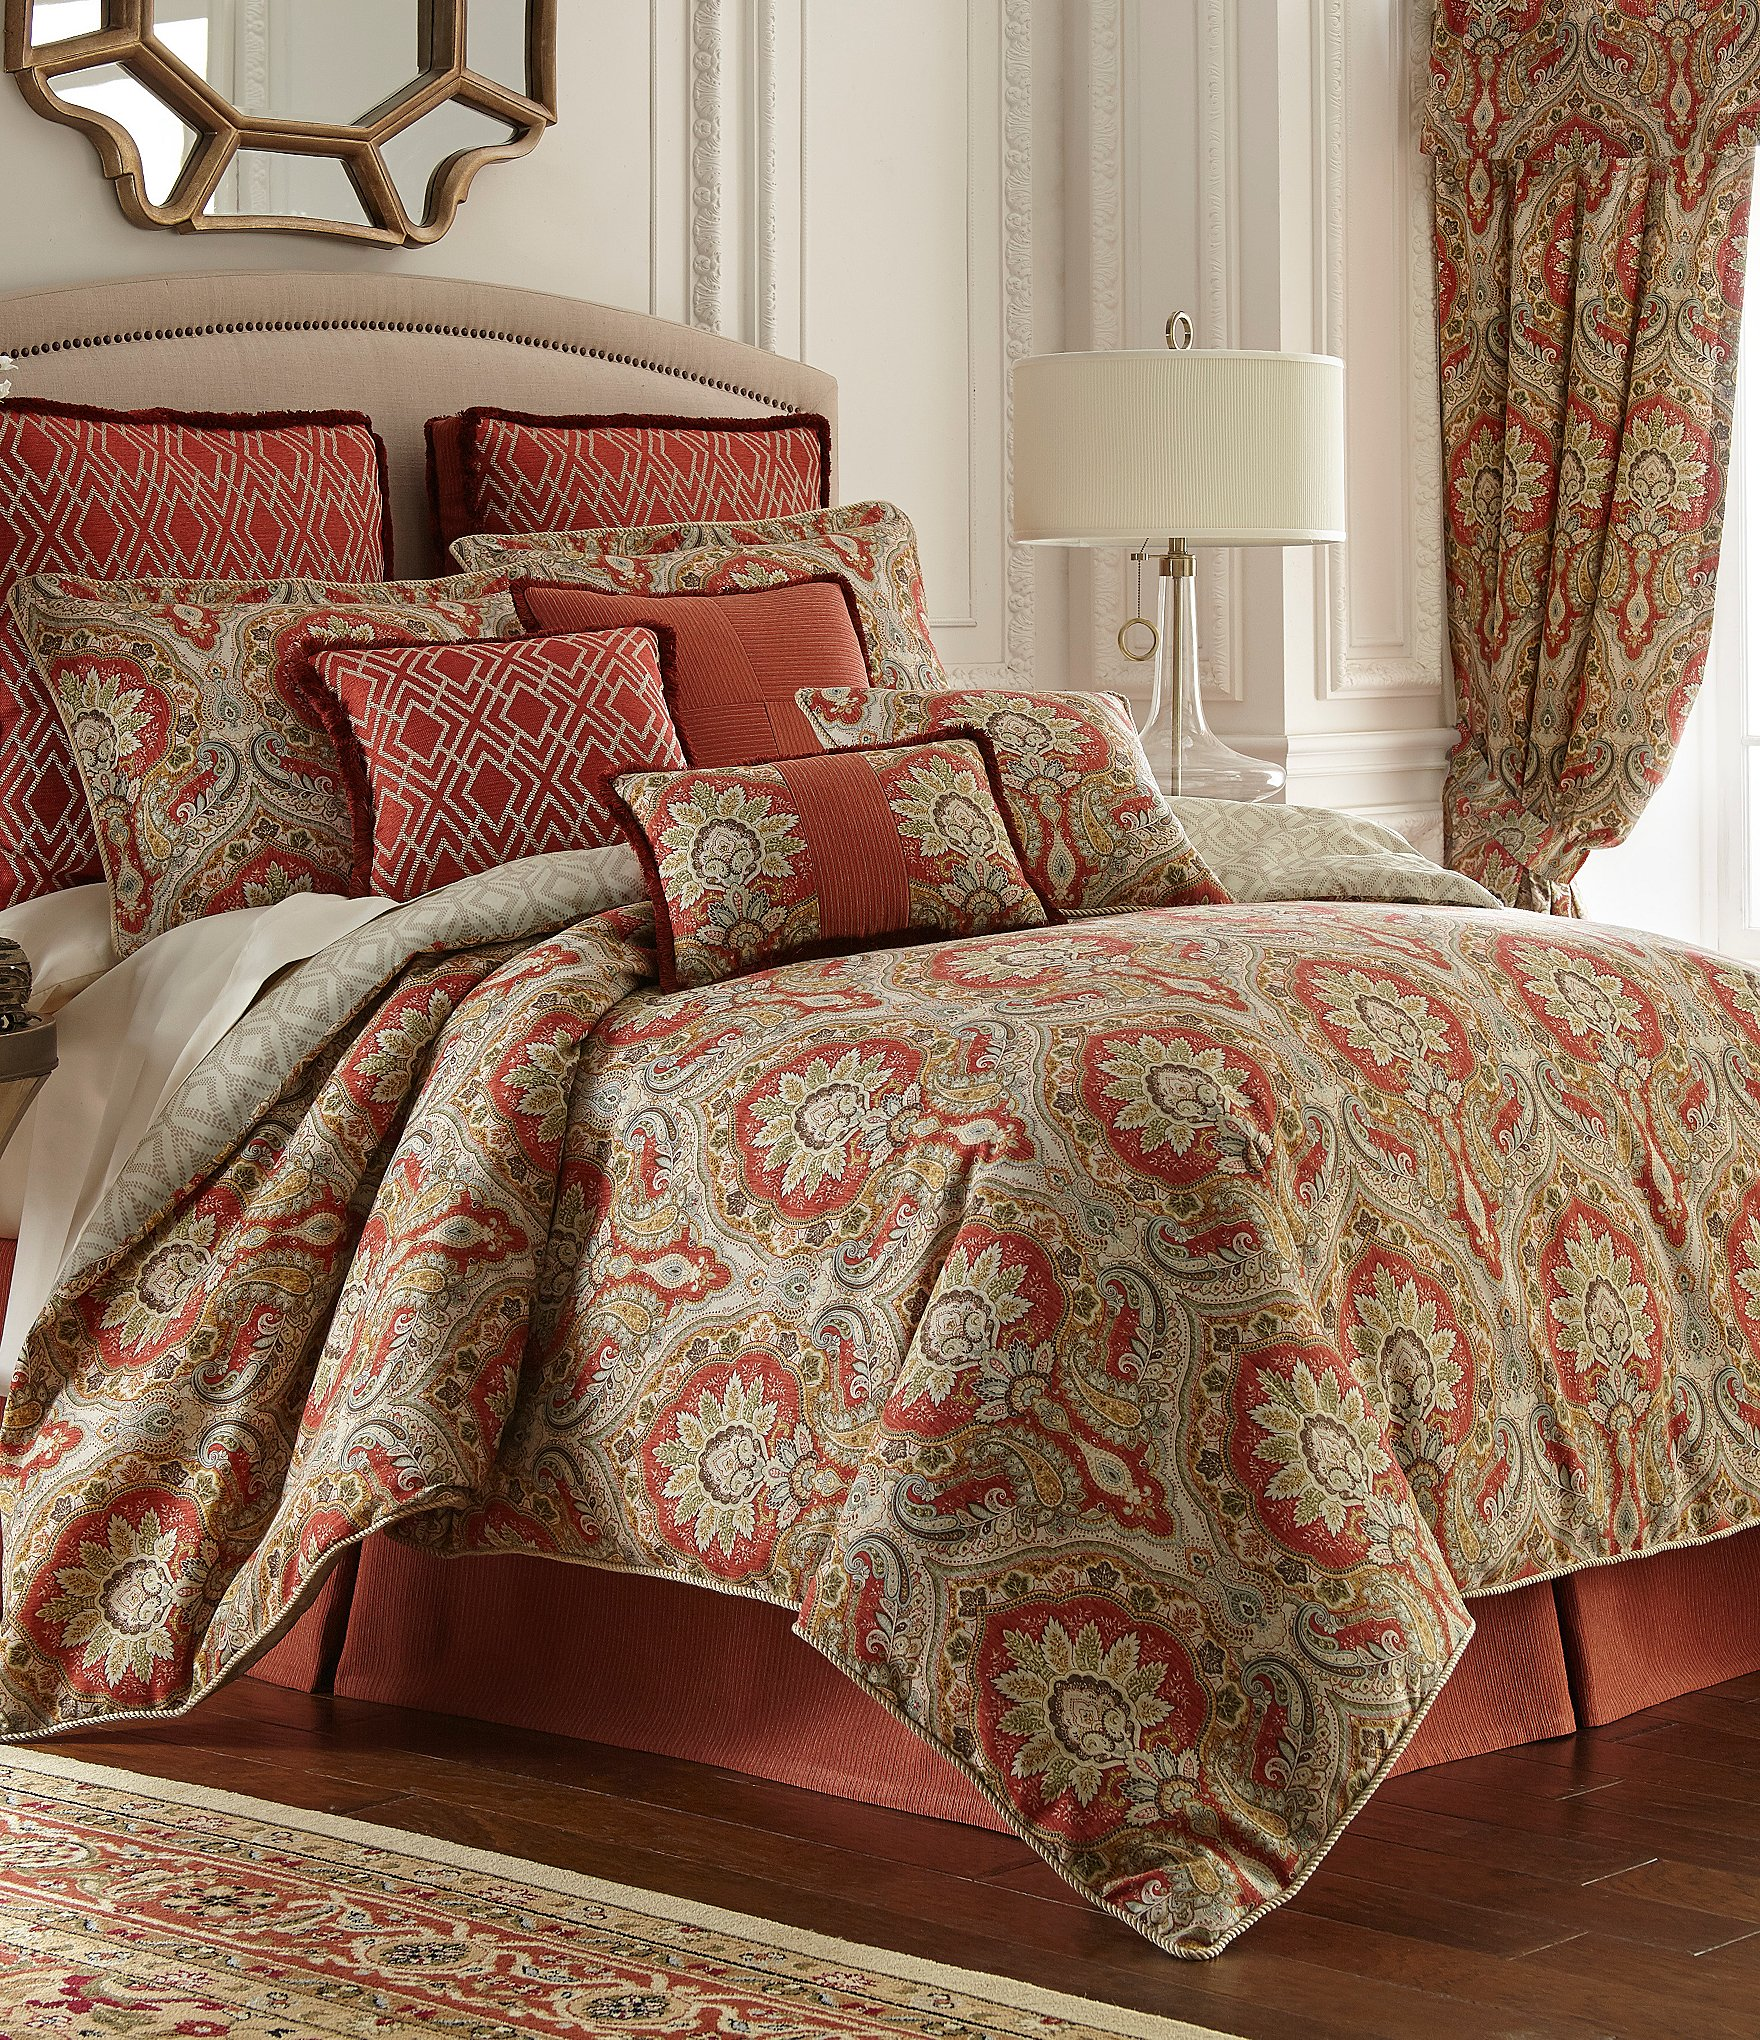 Damask Duvet Rose Tree Harrogate Paisley Damask Geometric Diamond Comforter Set Dillard S